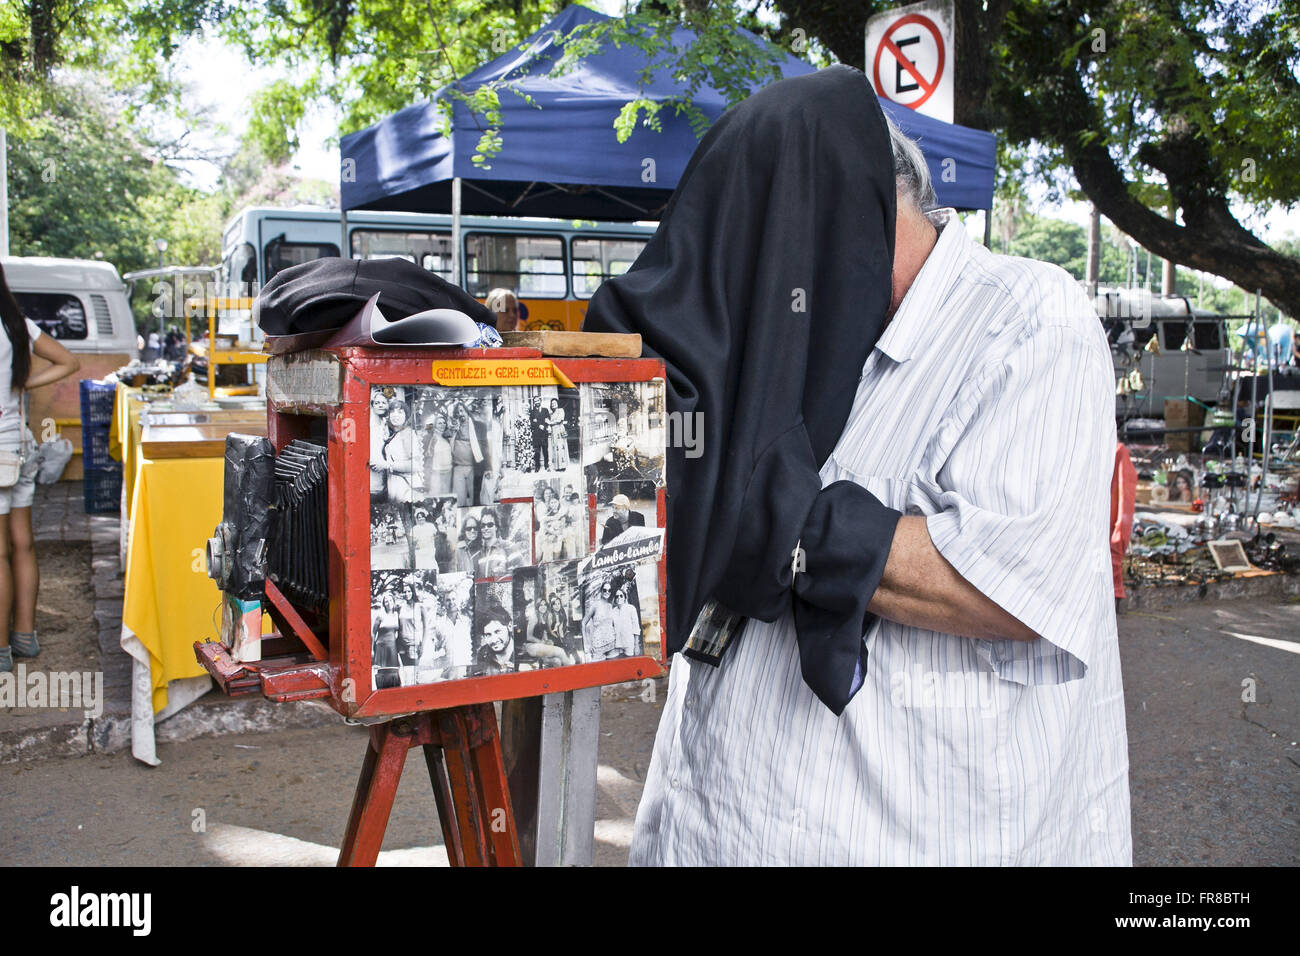 Photographer licks licks at the Fair of the Redemption - Farringdon Park - Stock Image